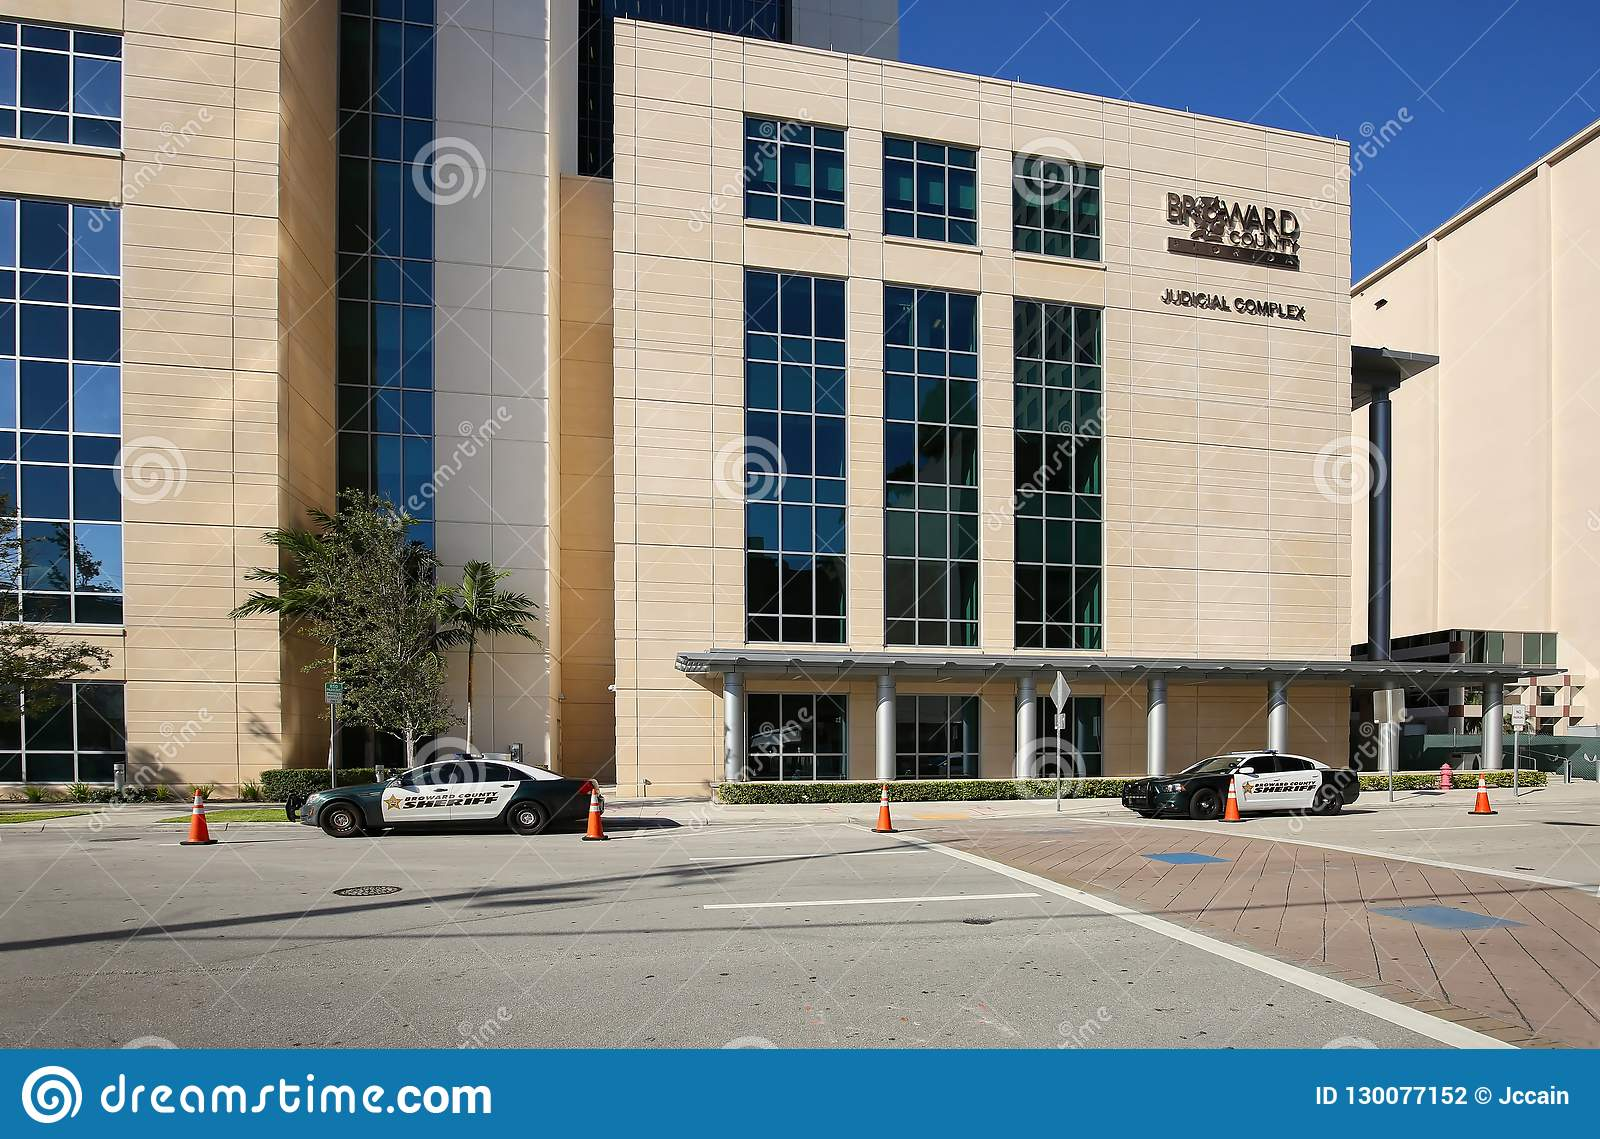 Facilities Management |Broward Courthouse